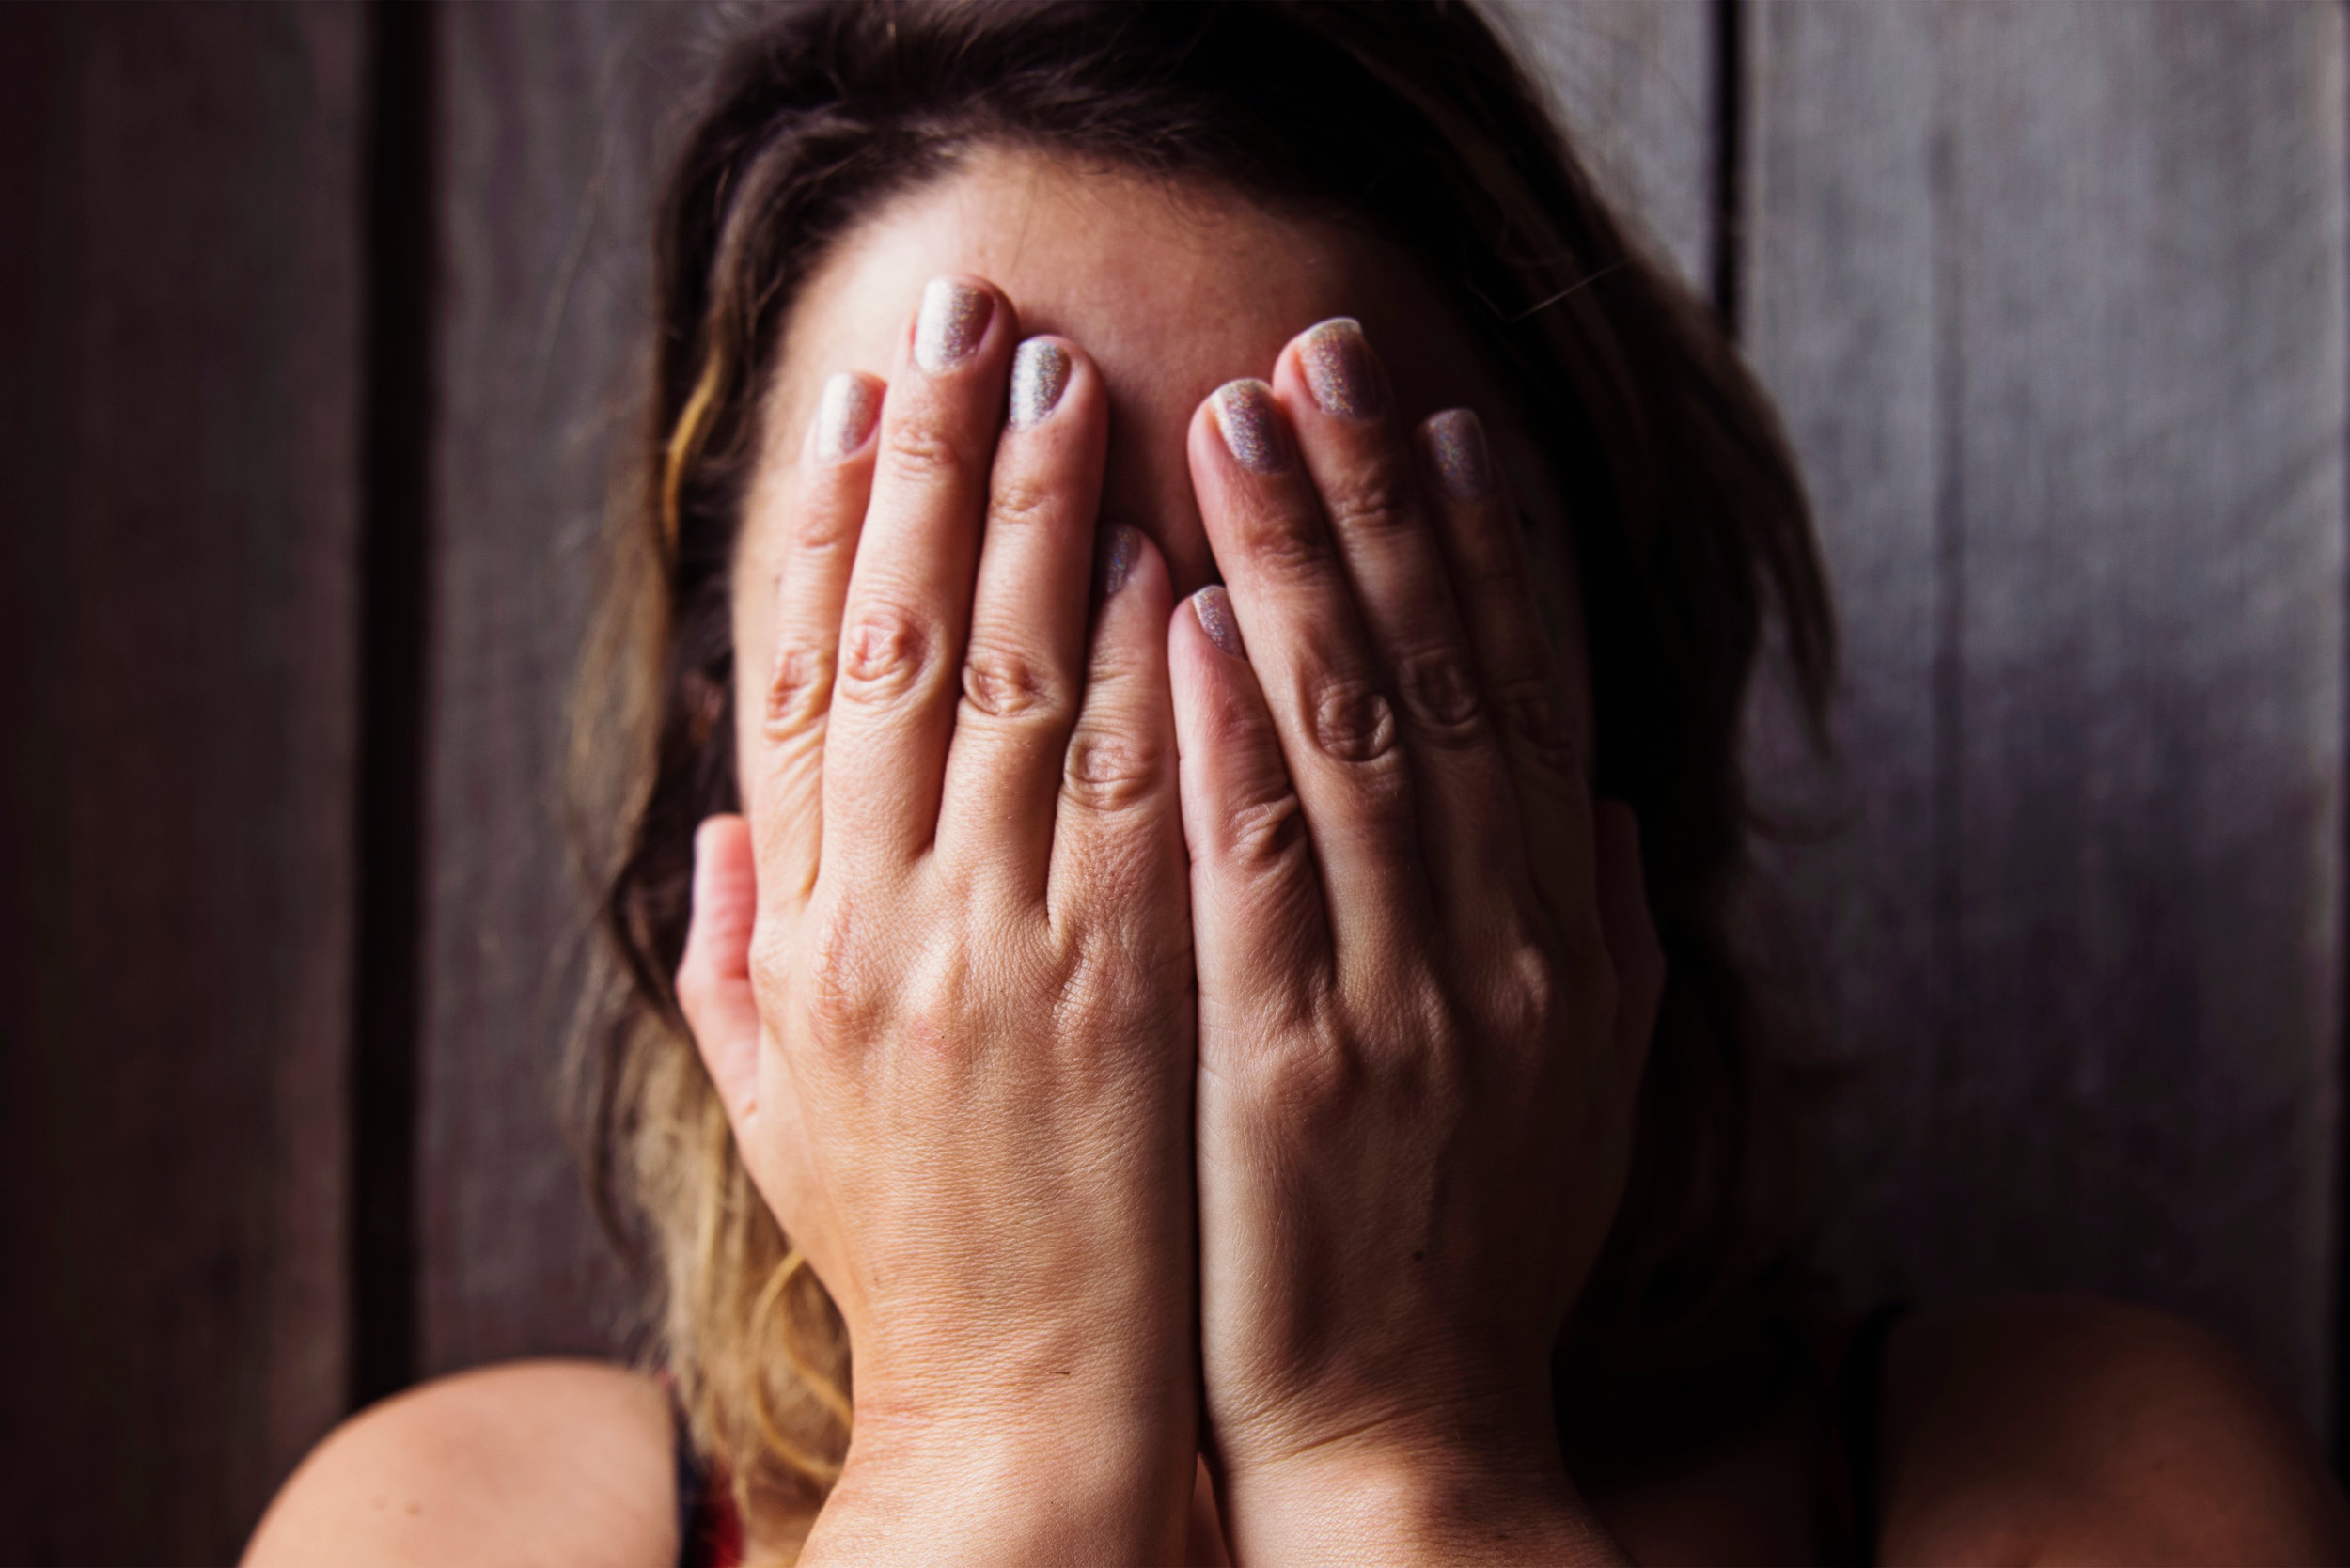 Canva - Woman Covering Her Face With Her Hands.jpg